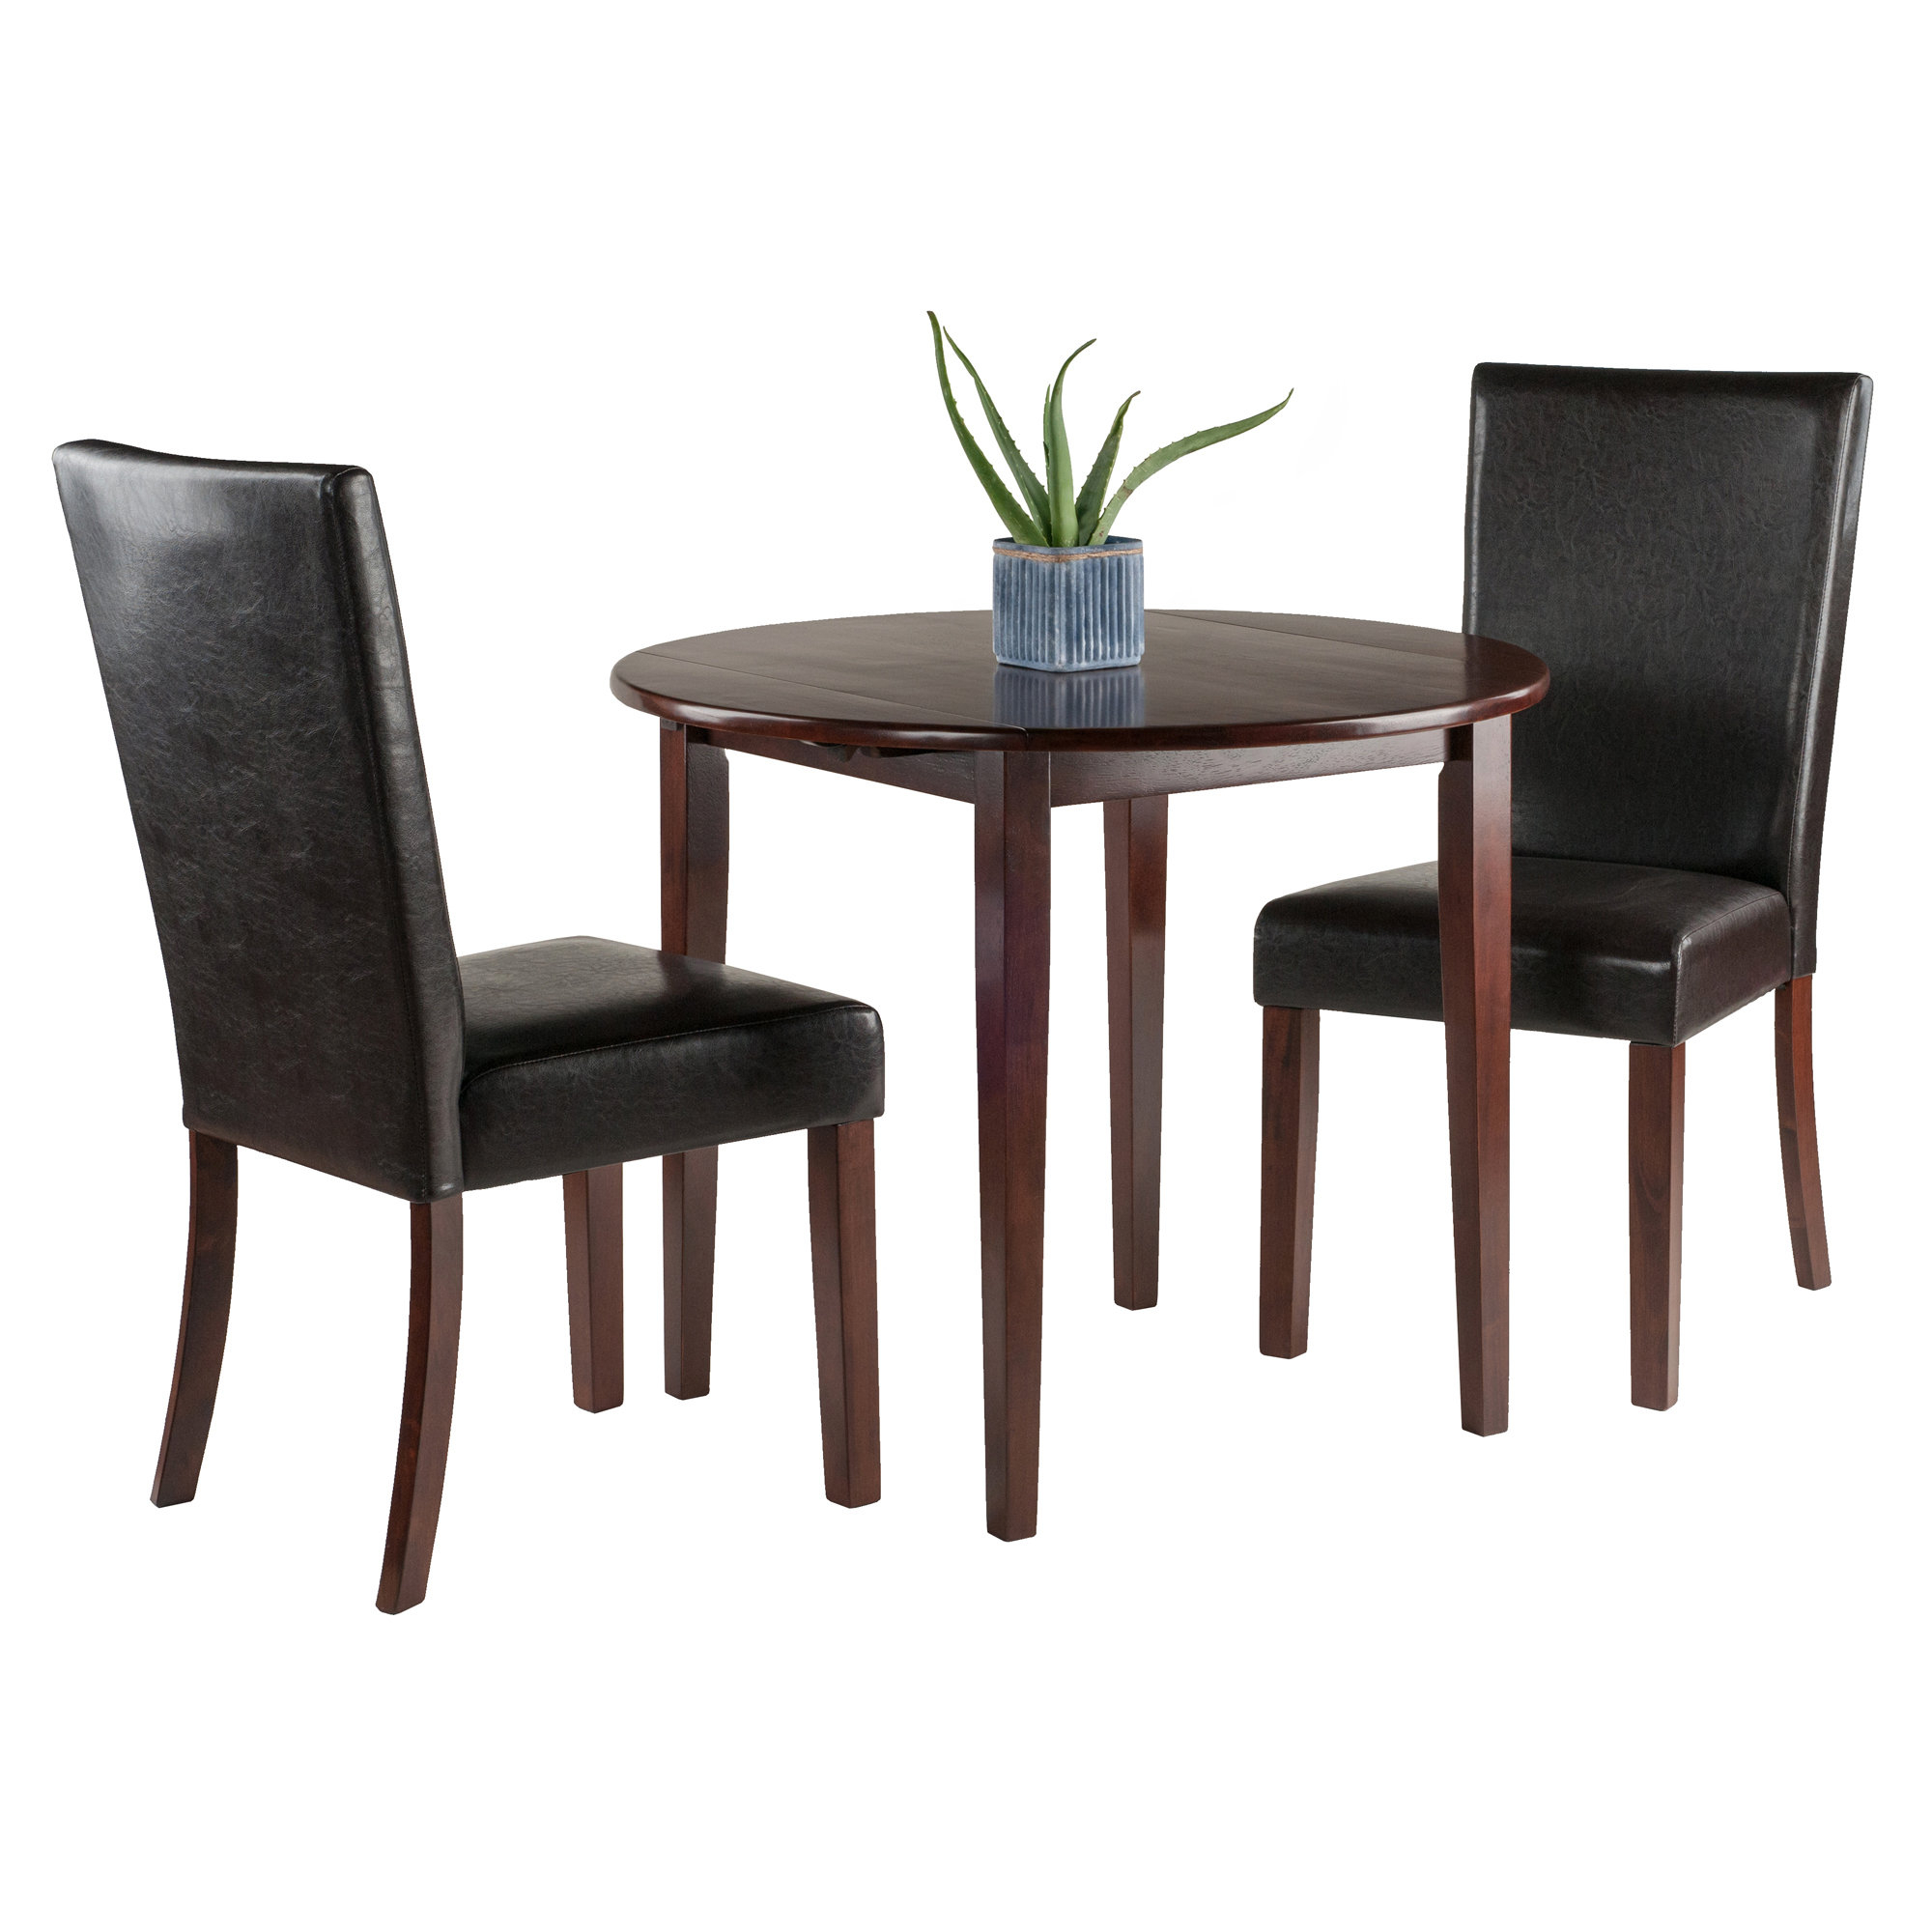 Baillie 3 Piece Dining Sets Within Most Current Kendall Traditional 3 Piece Drop Leaf Dining Set (View 18 of 20)